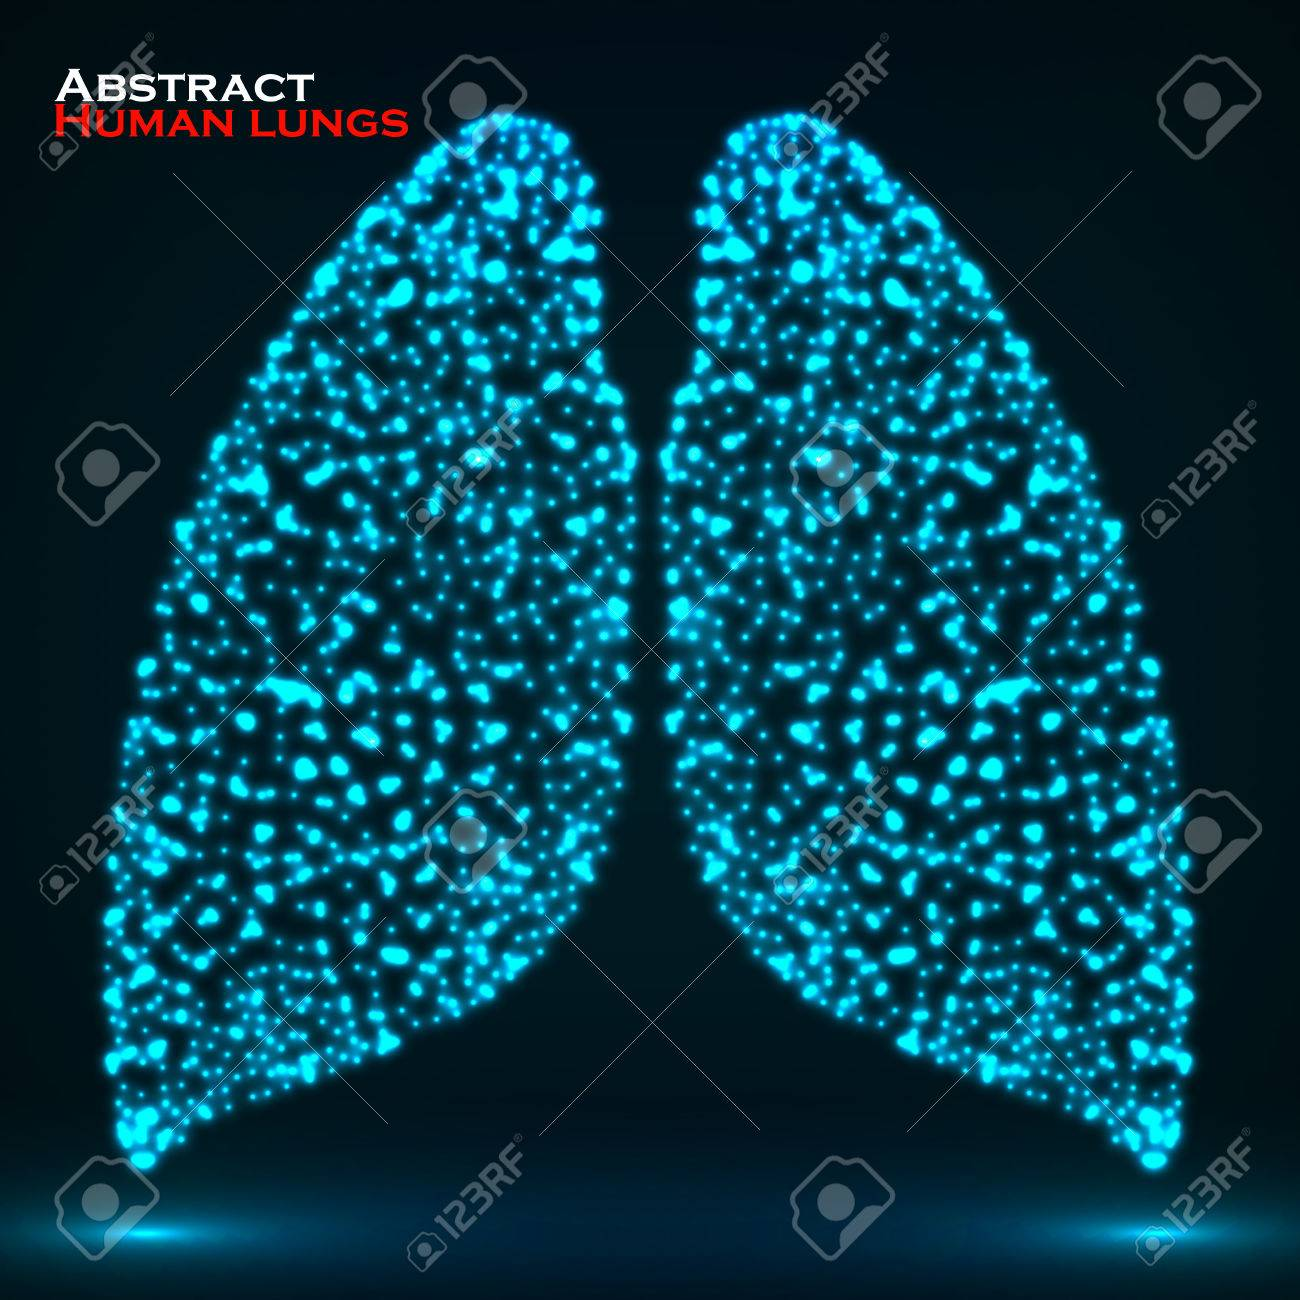 Abstract Glowing Human Lung Royalty Free Cliparts Vectors And